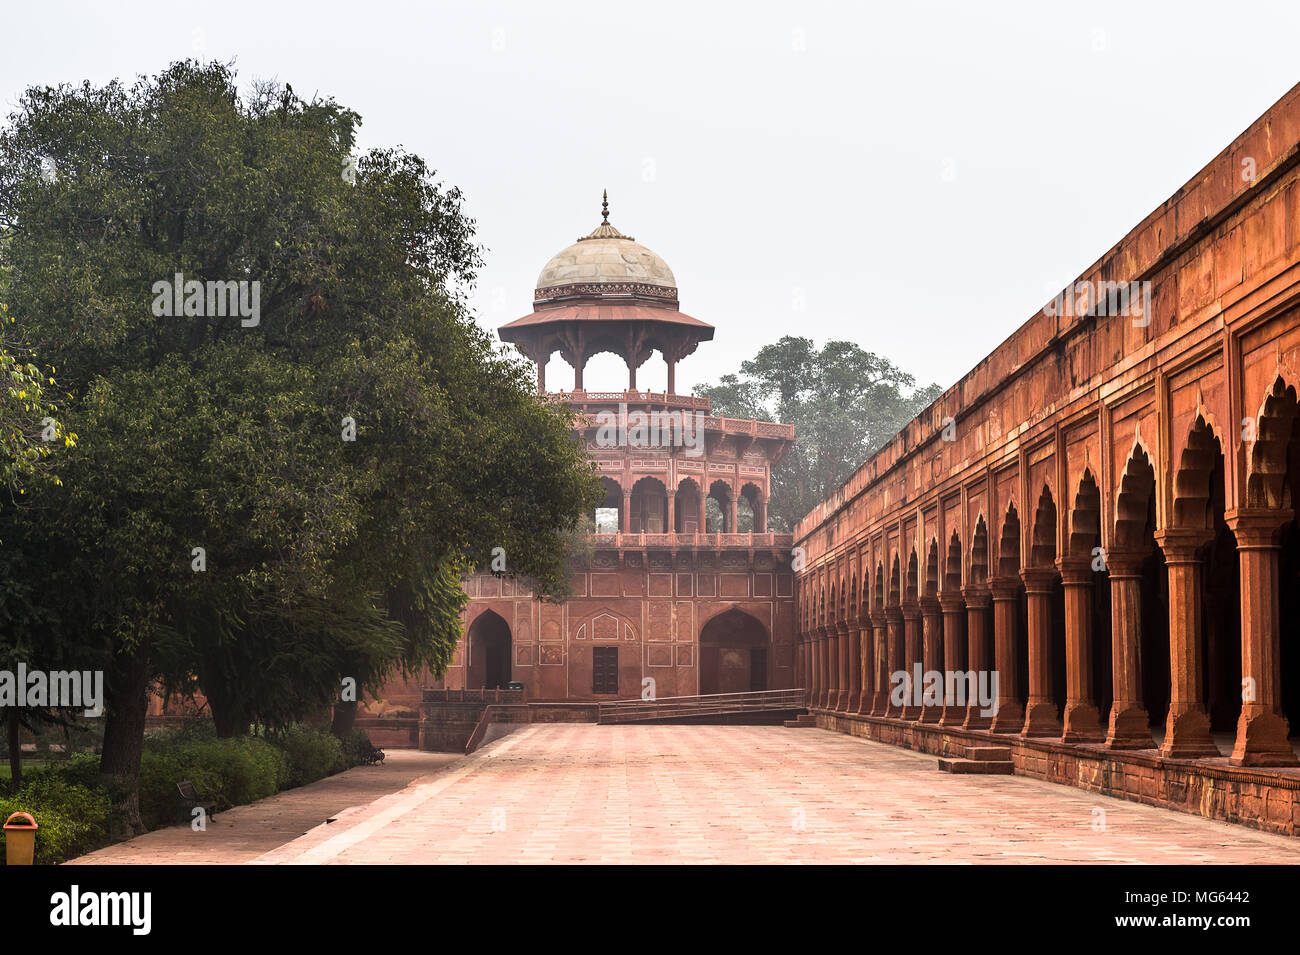 Gate for Taj Mahal (Crown of Palaces), an ivory-white marble mausoleum on the south bank of the Yamuna river in Agra. - Stock Image